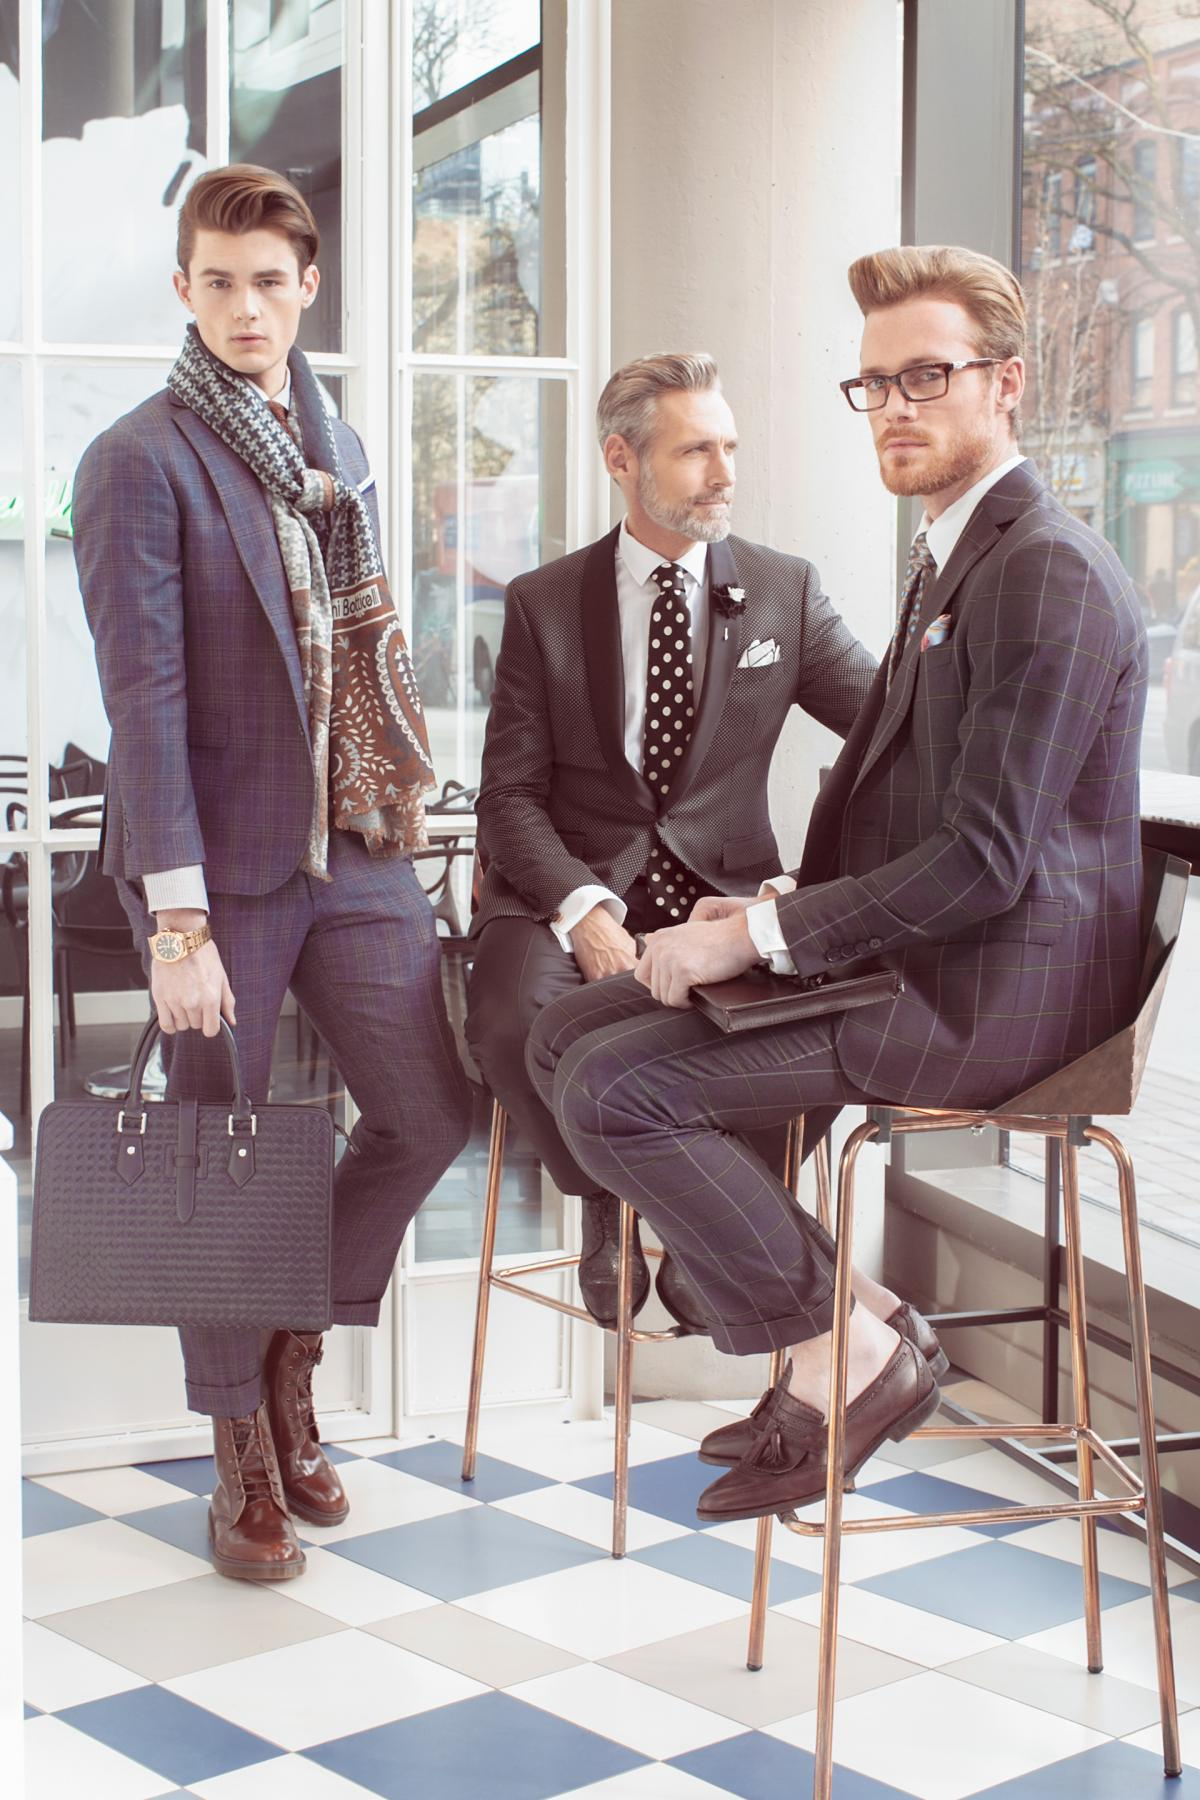 Three stylish men in suits waiting for the business meeting